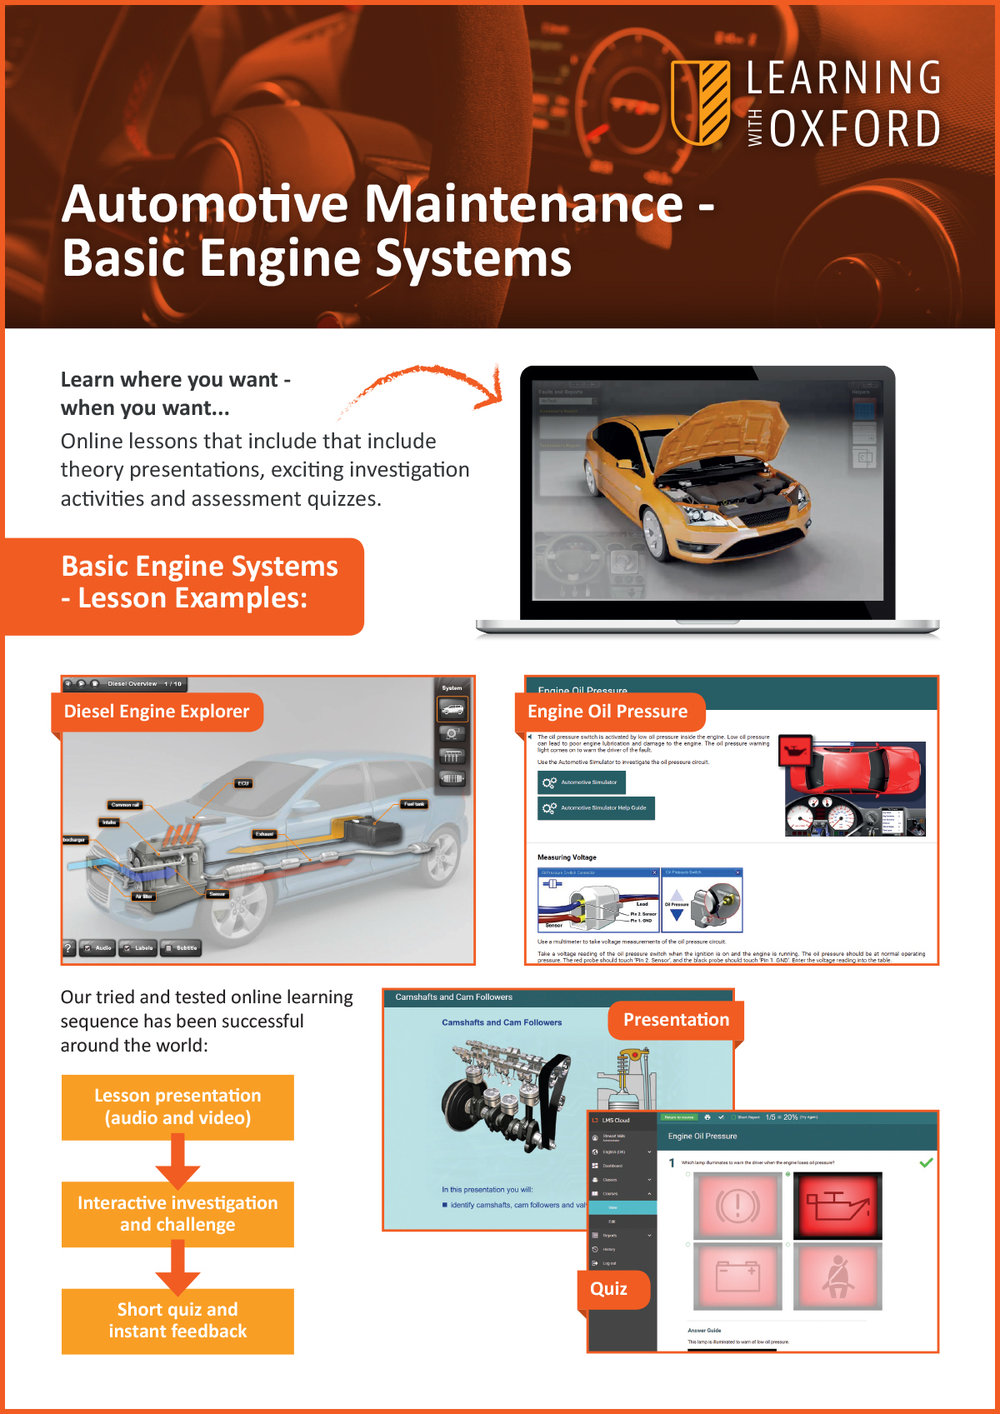 What lesson topics are covered with the licence? - Take a look at our Basic Engine Systems InfoSheet to see a full topic listing.